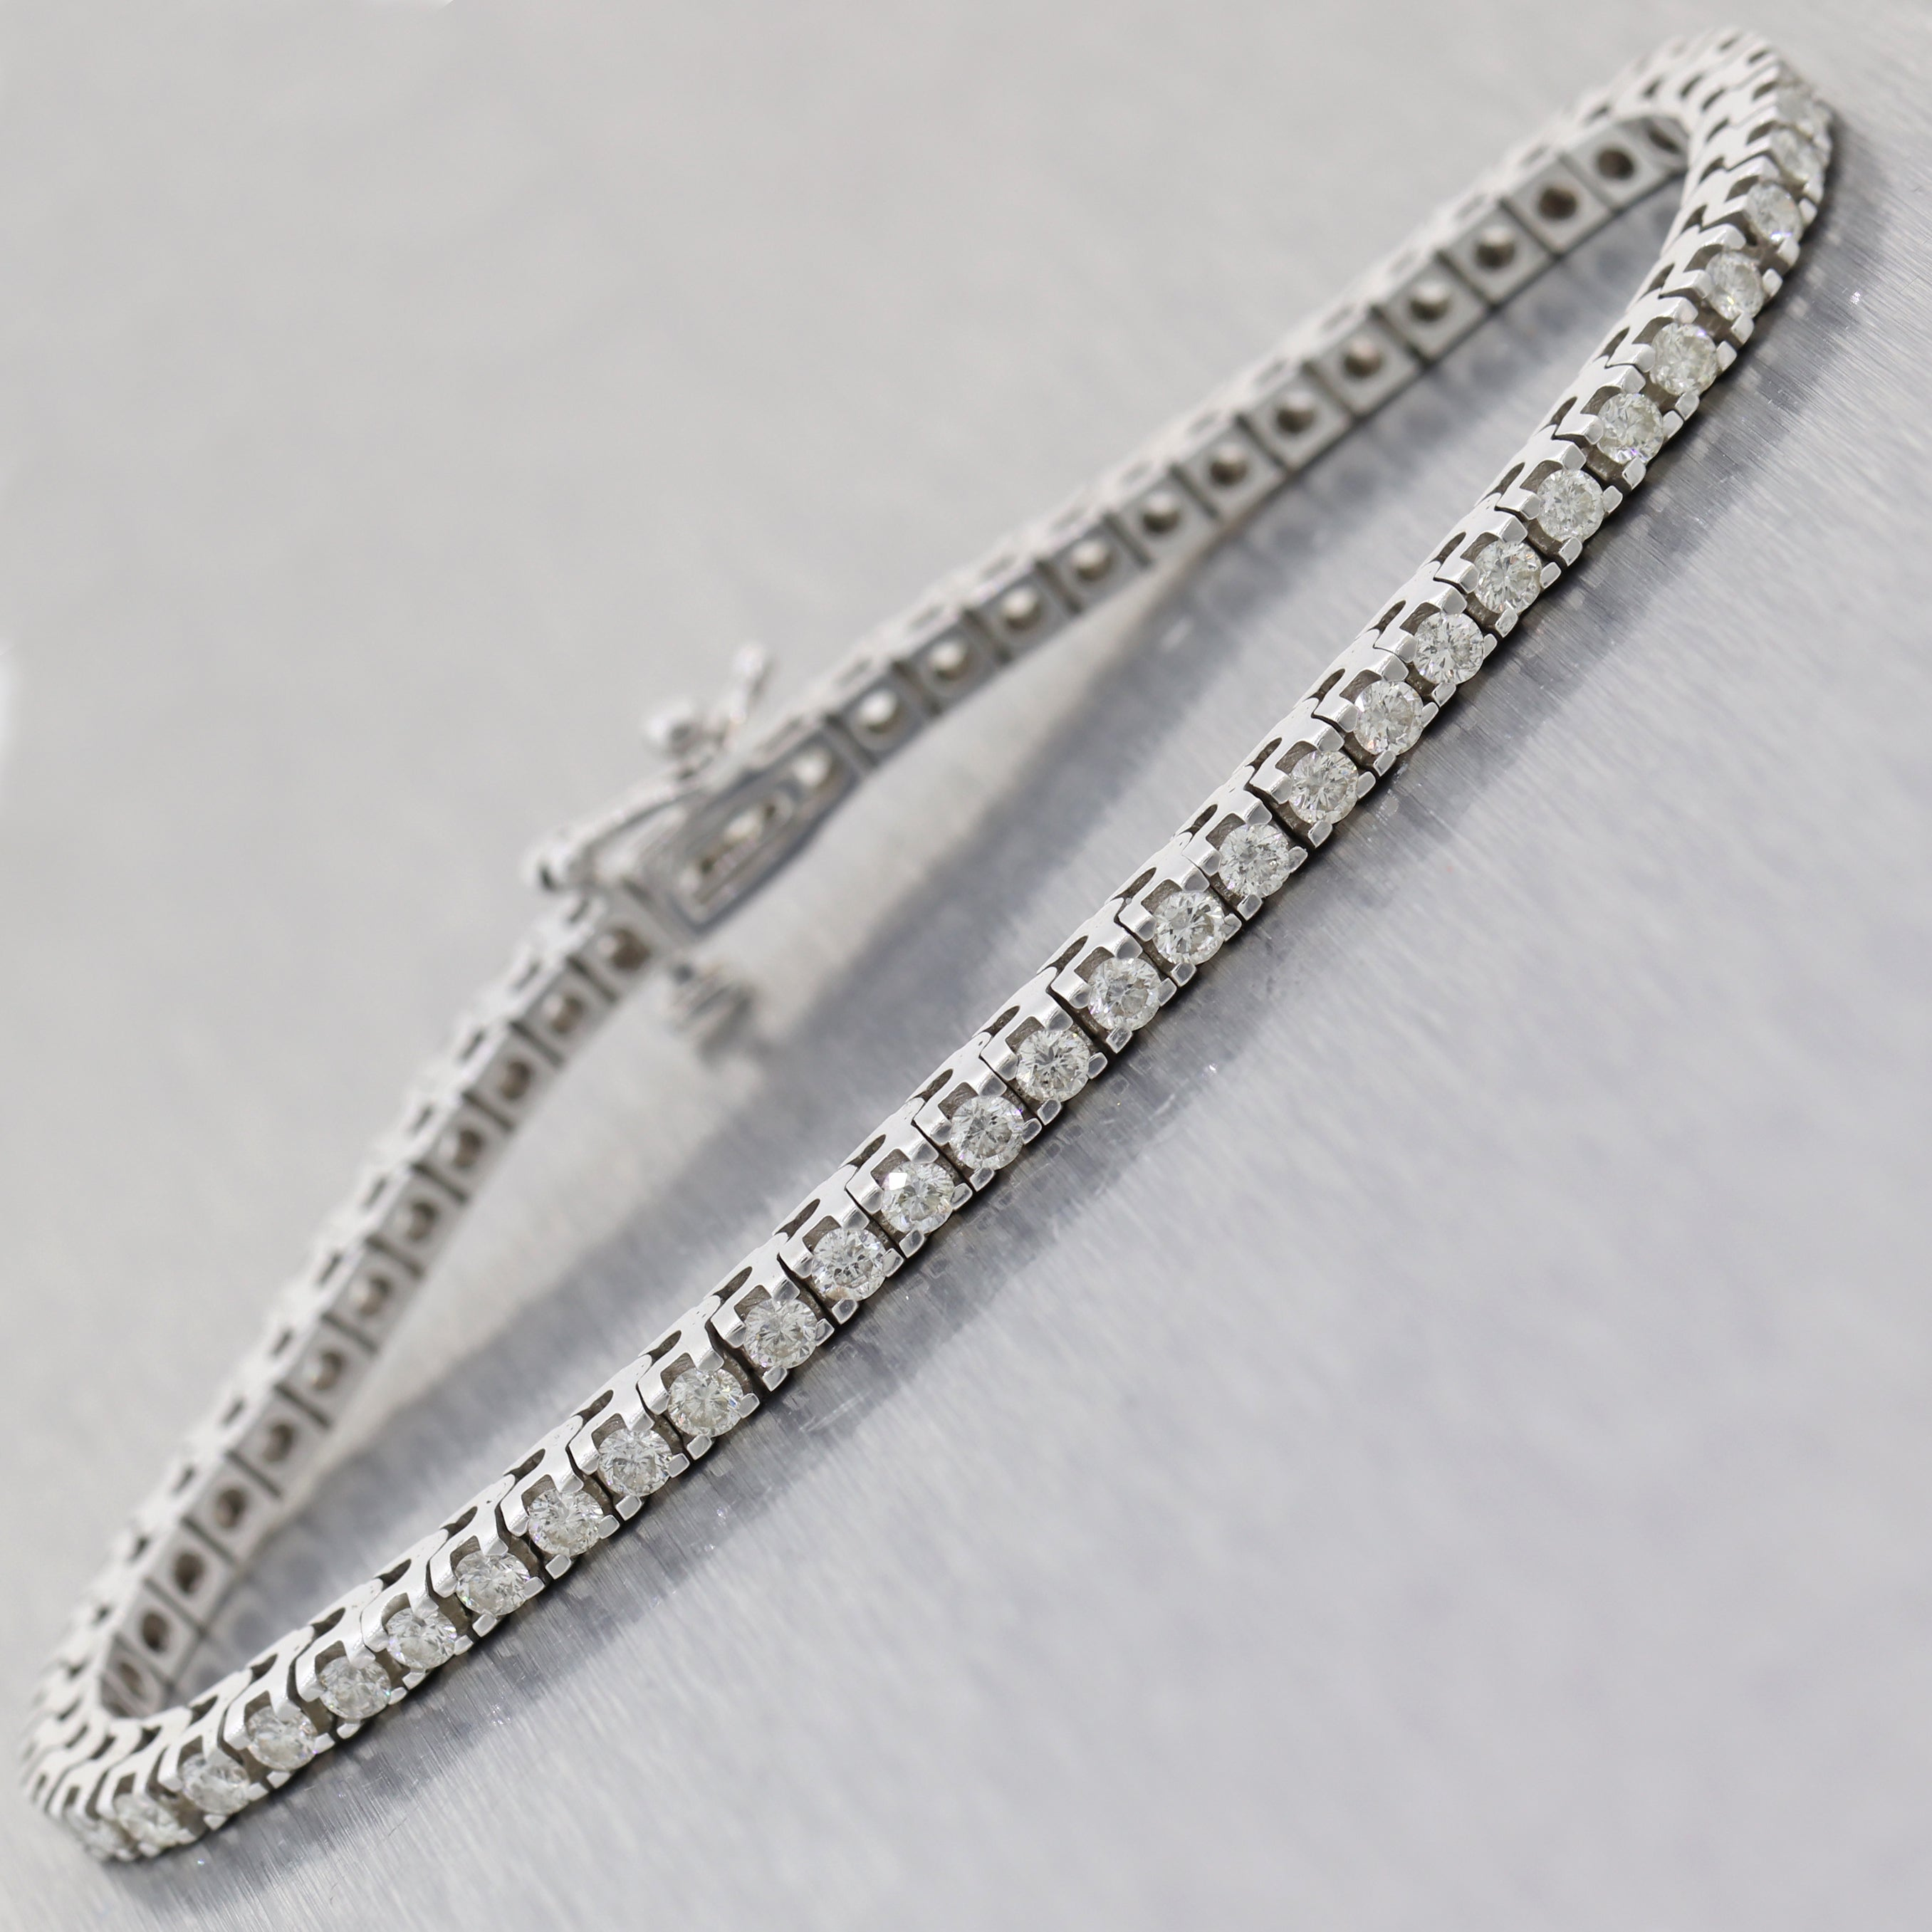 Modern Solid 14k White Gold 3.00ctw Diamond 3mm Tennis Bracelet N8